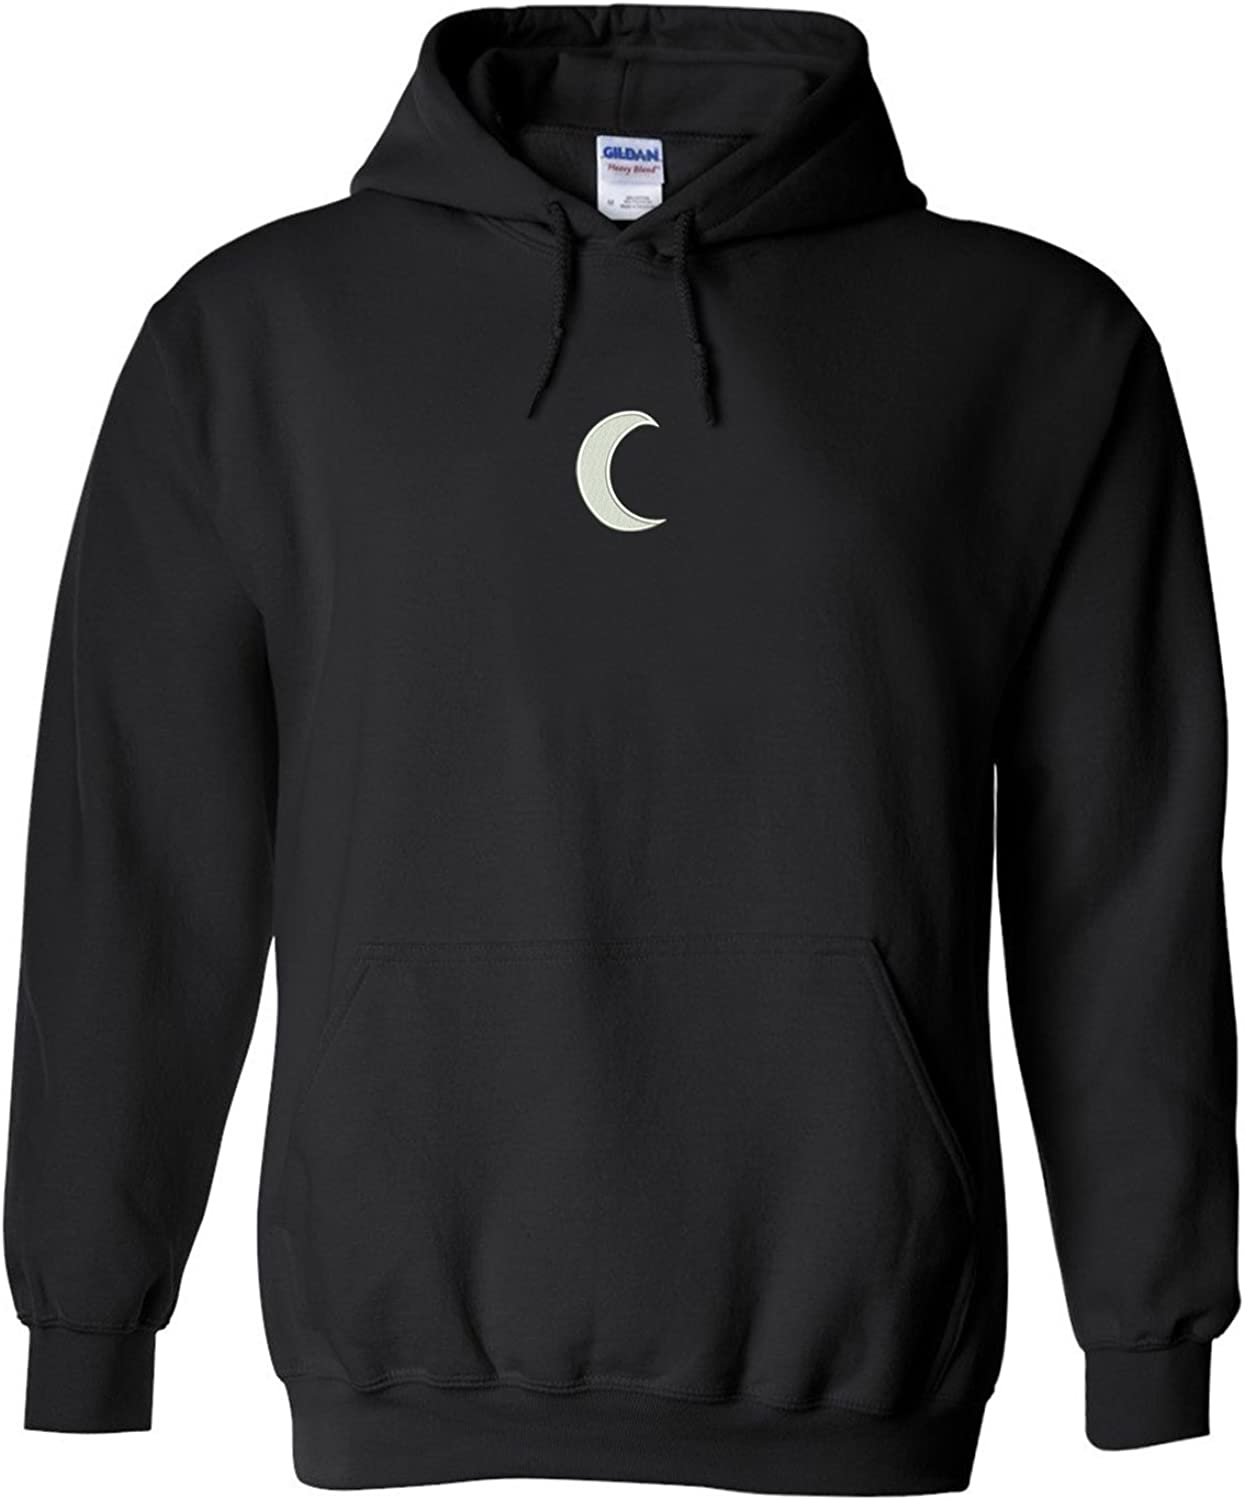 Trendy Apparel Shop Crescent Moon Embroidered Heavy Blend Hoodie